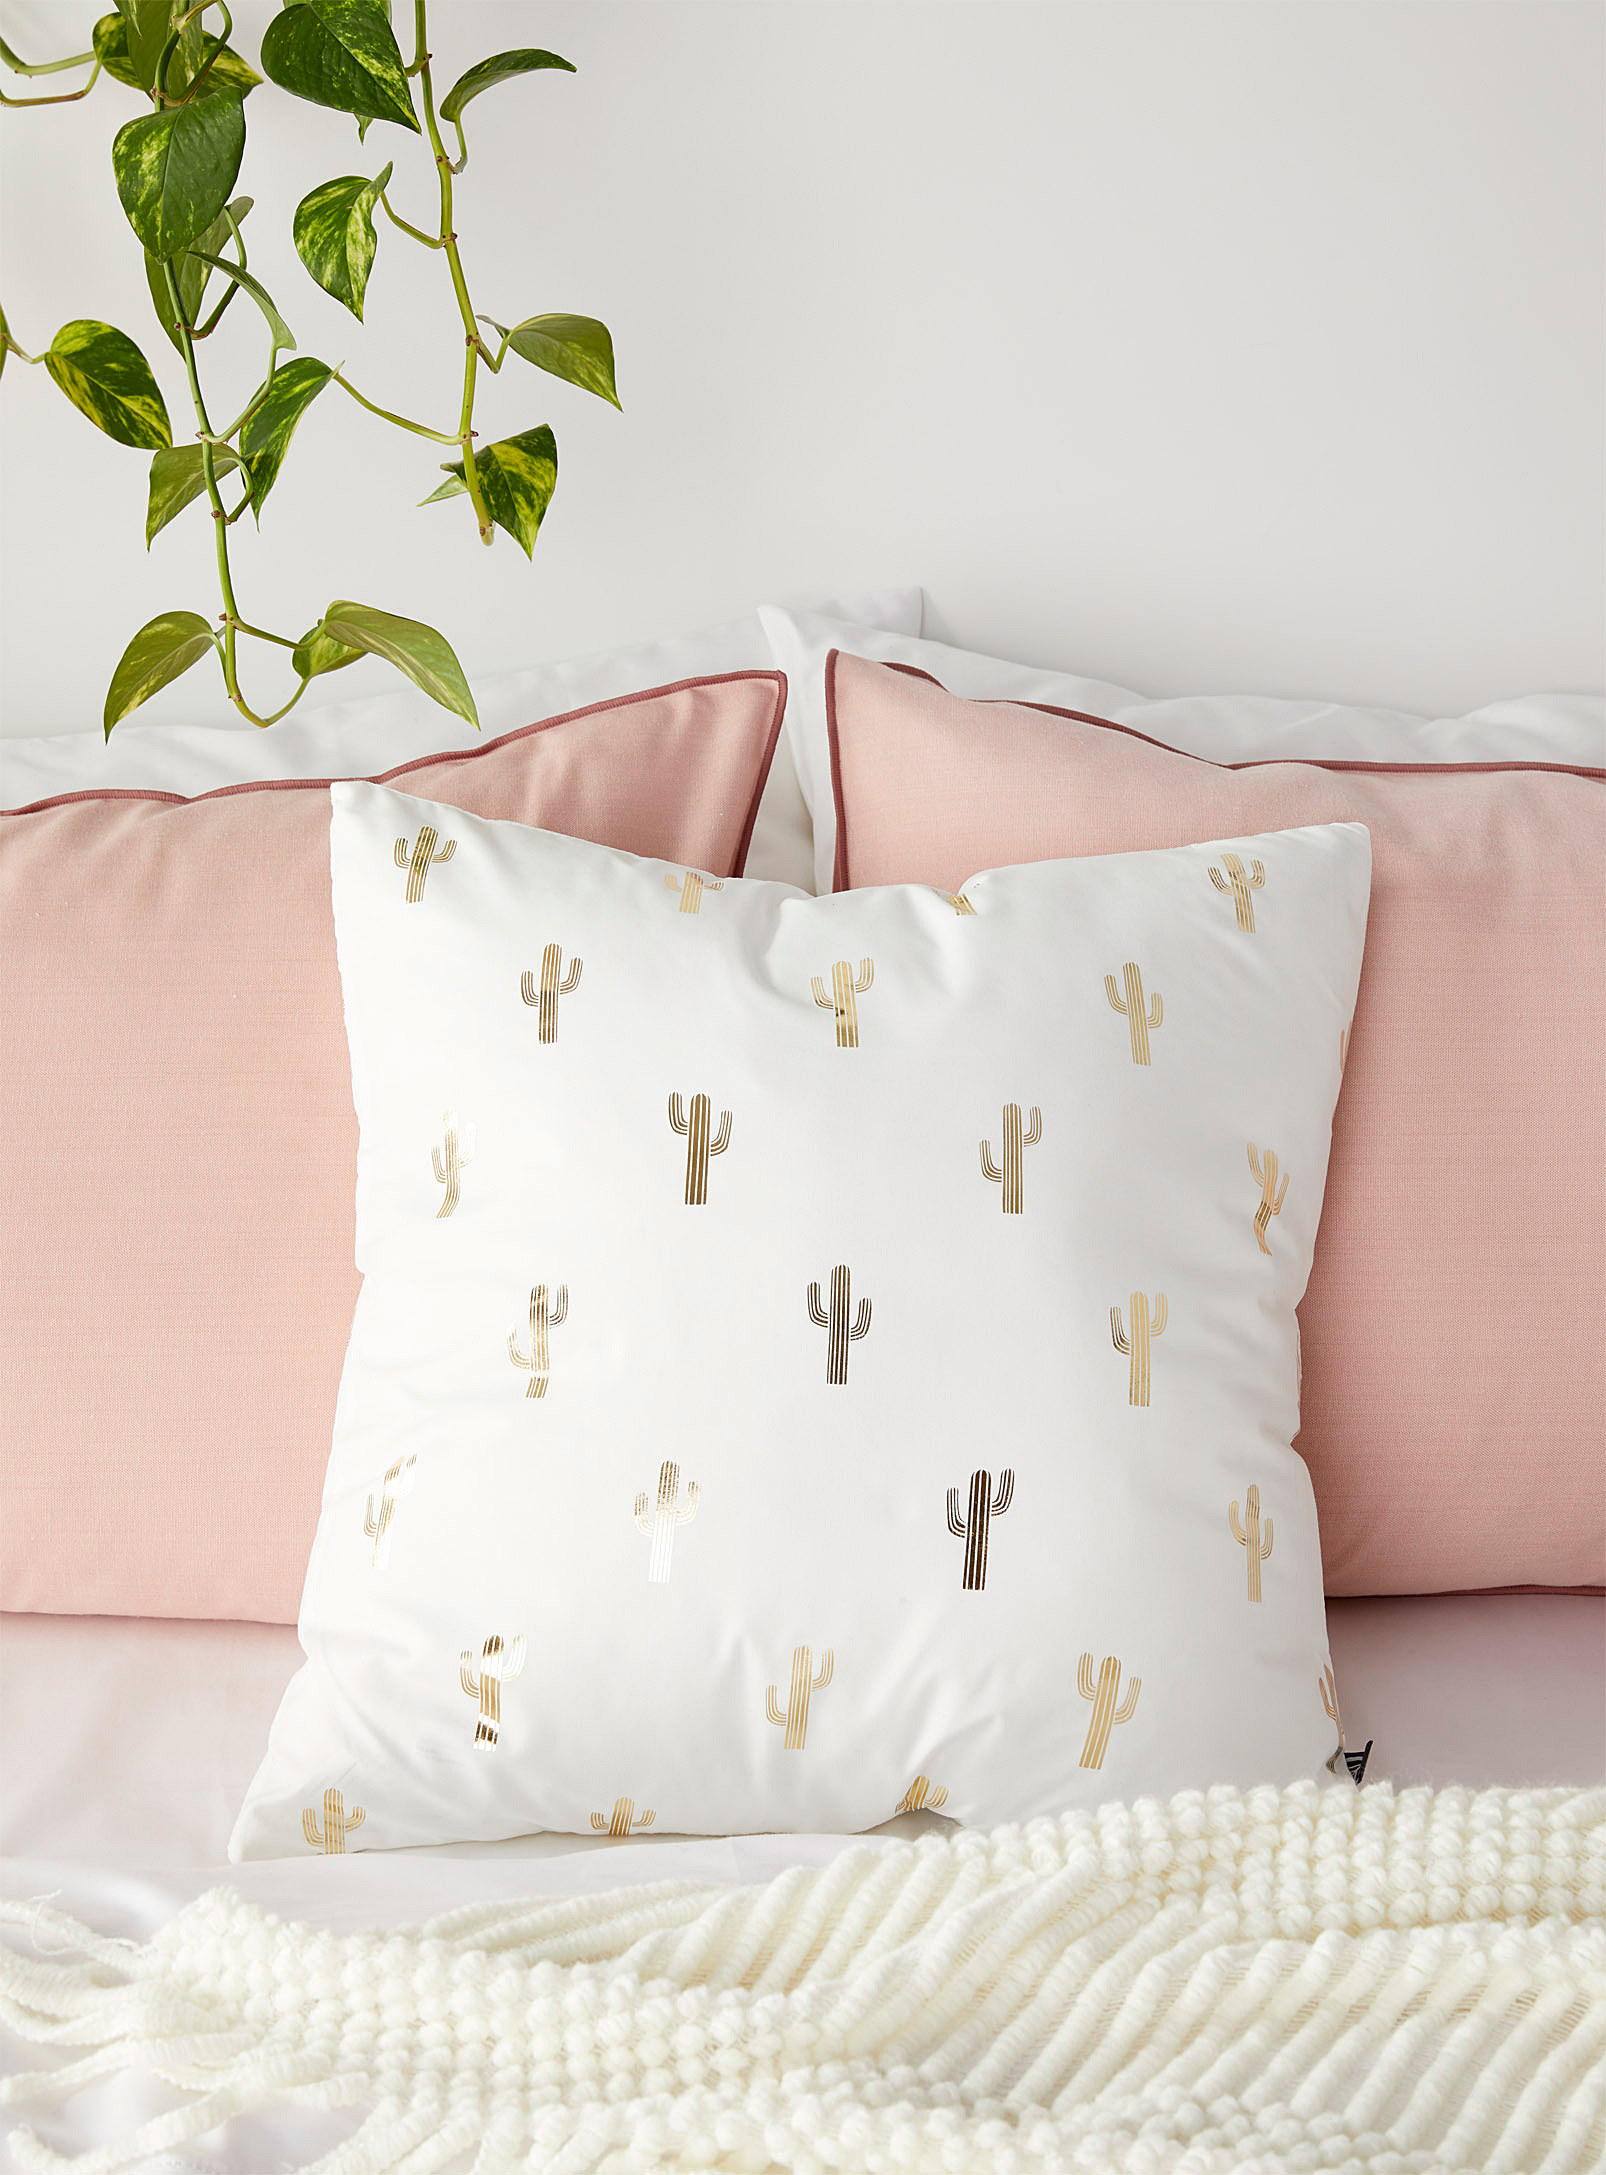 the cactus pillow on a bed as an accent pillow